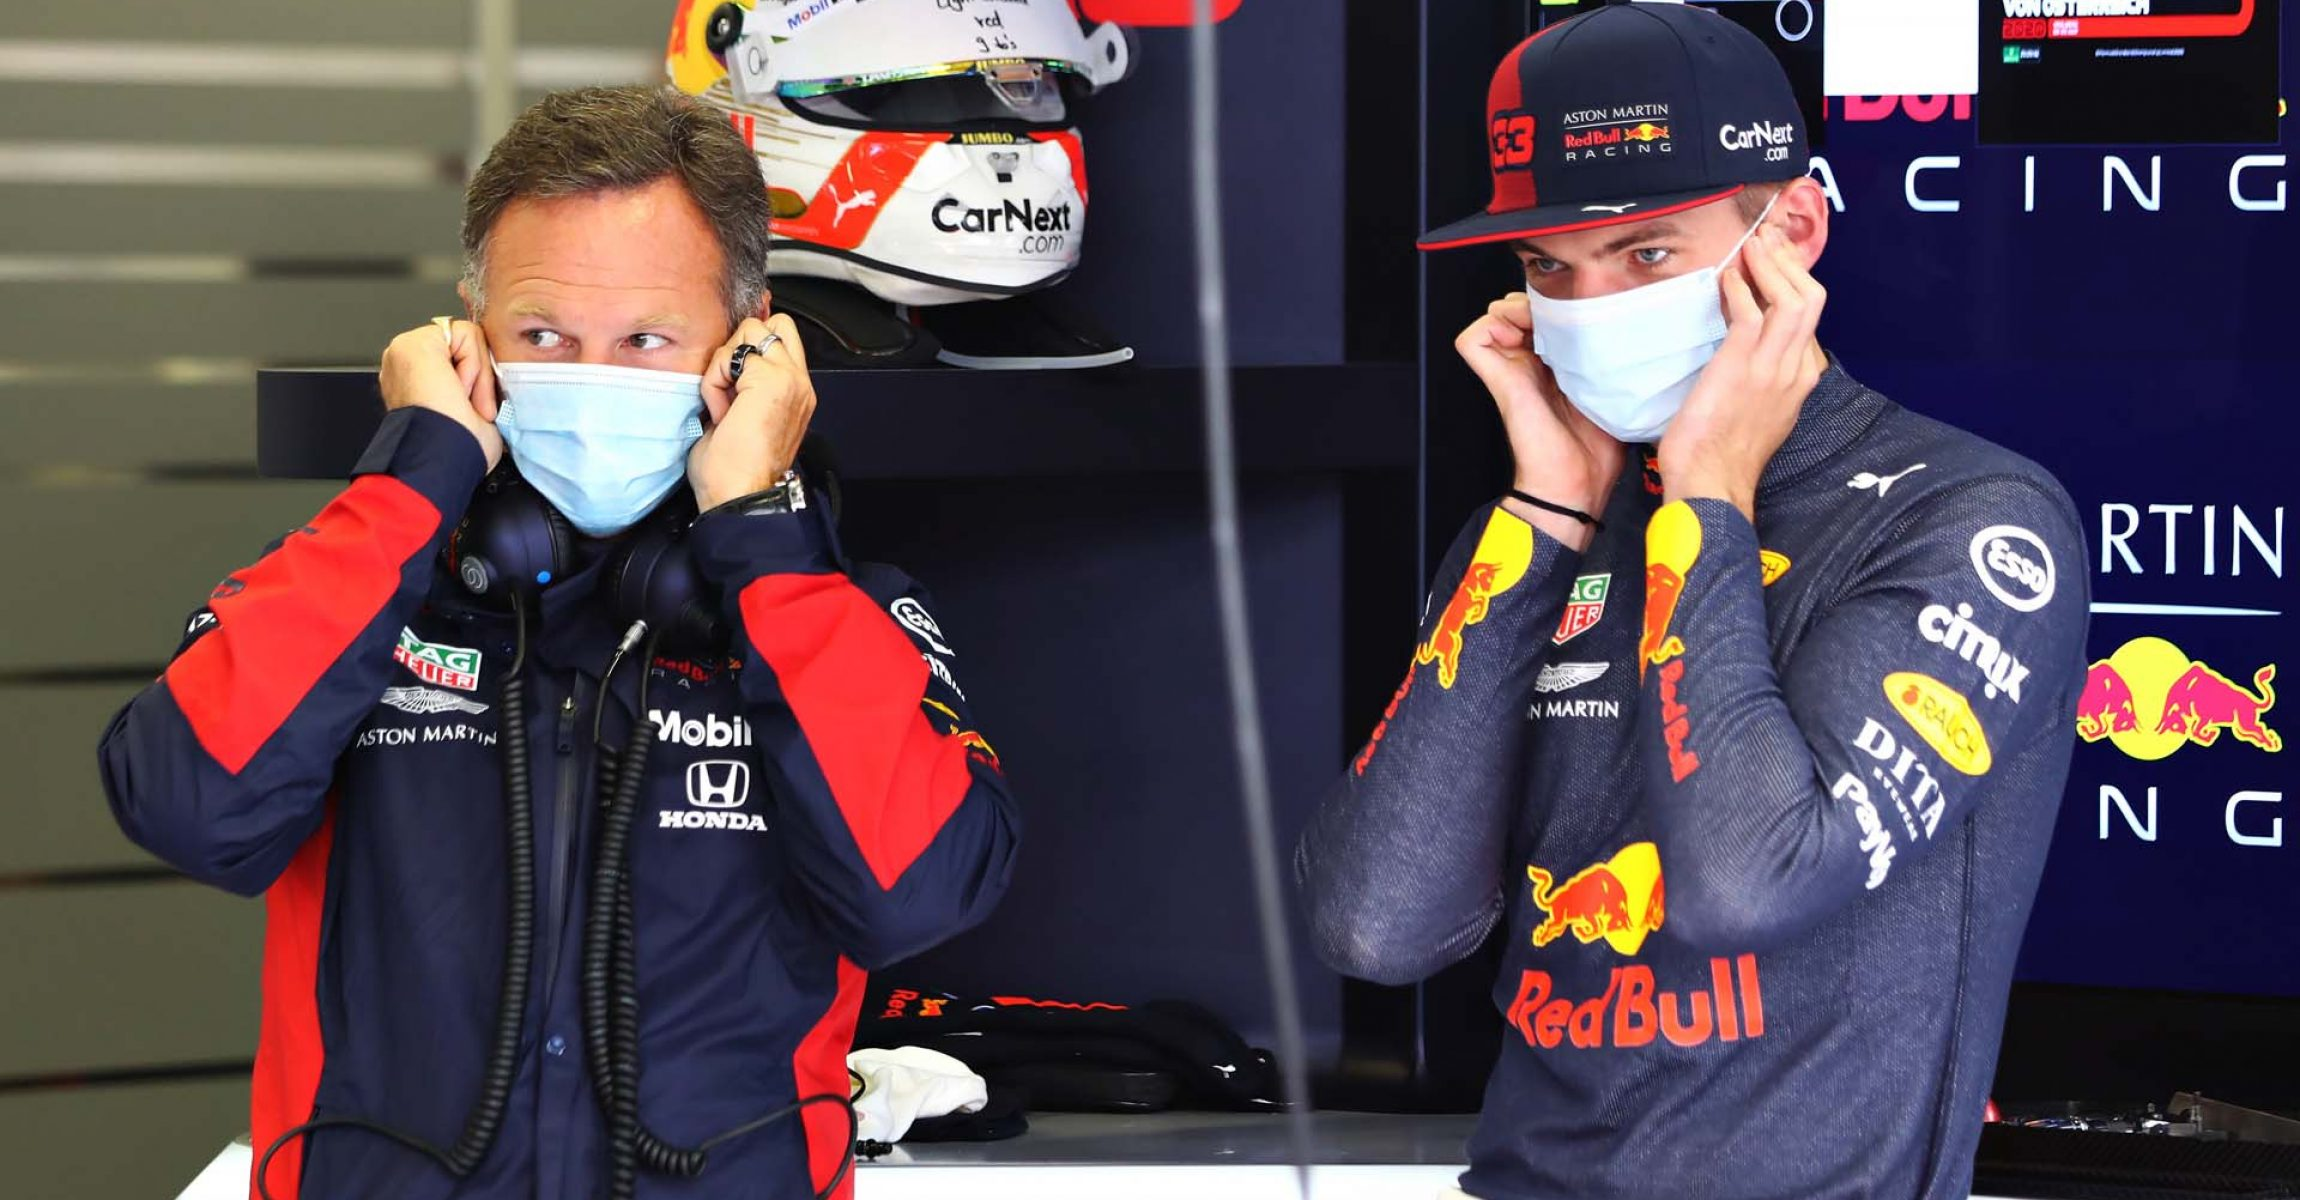 SPIELBERG, AUSTRIA - JULY 03: Max Verstappen of Netherlands and Red Bull Racing and Red Bull Racing Team Principal Christian Horner look on in the garage during practice for the F1 Grand Prix of Austria at Red Bull Ring on July 03, 2020 in Spielberg, Austria. (Photo by Getty Images/Getty Images) // Getty Images / Red Bull Content Pool // AP-24GYZV1812111 // Usage for editorial use only //